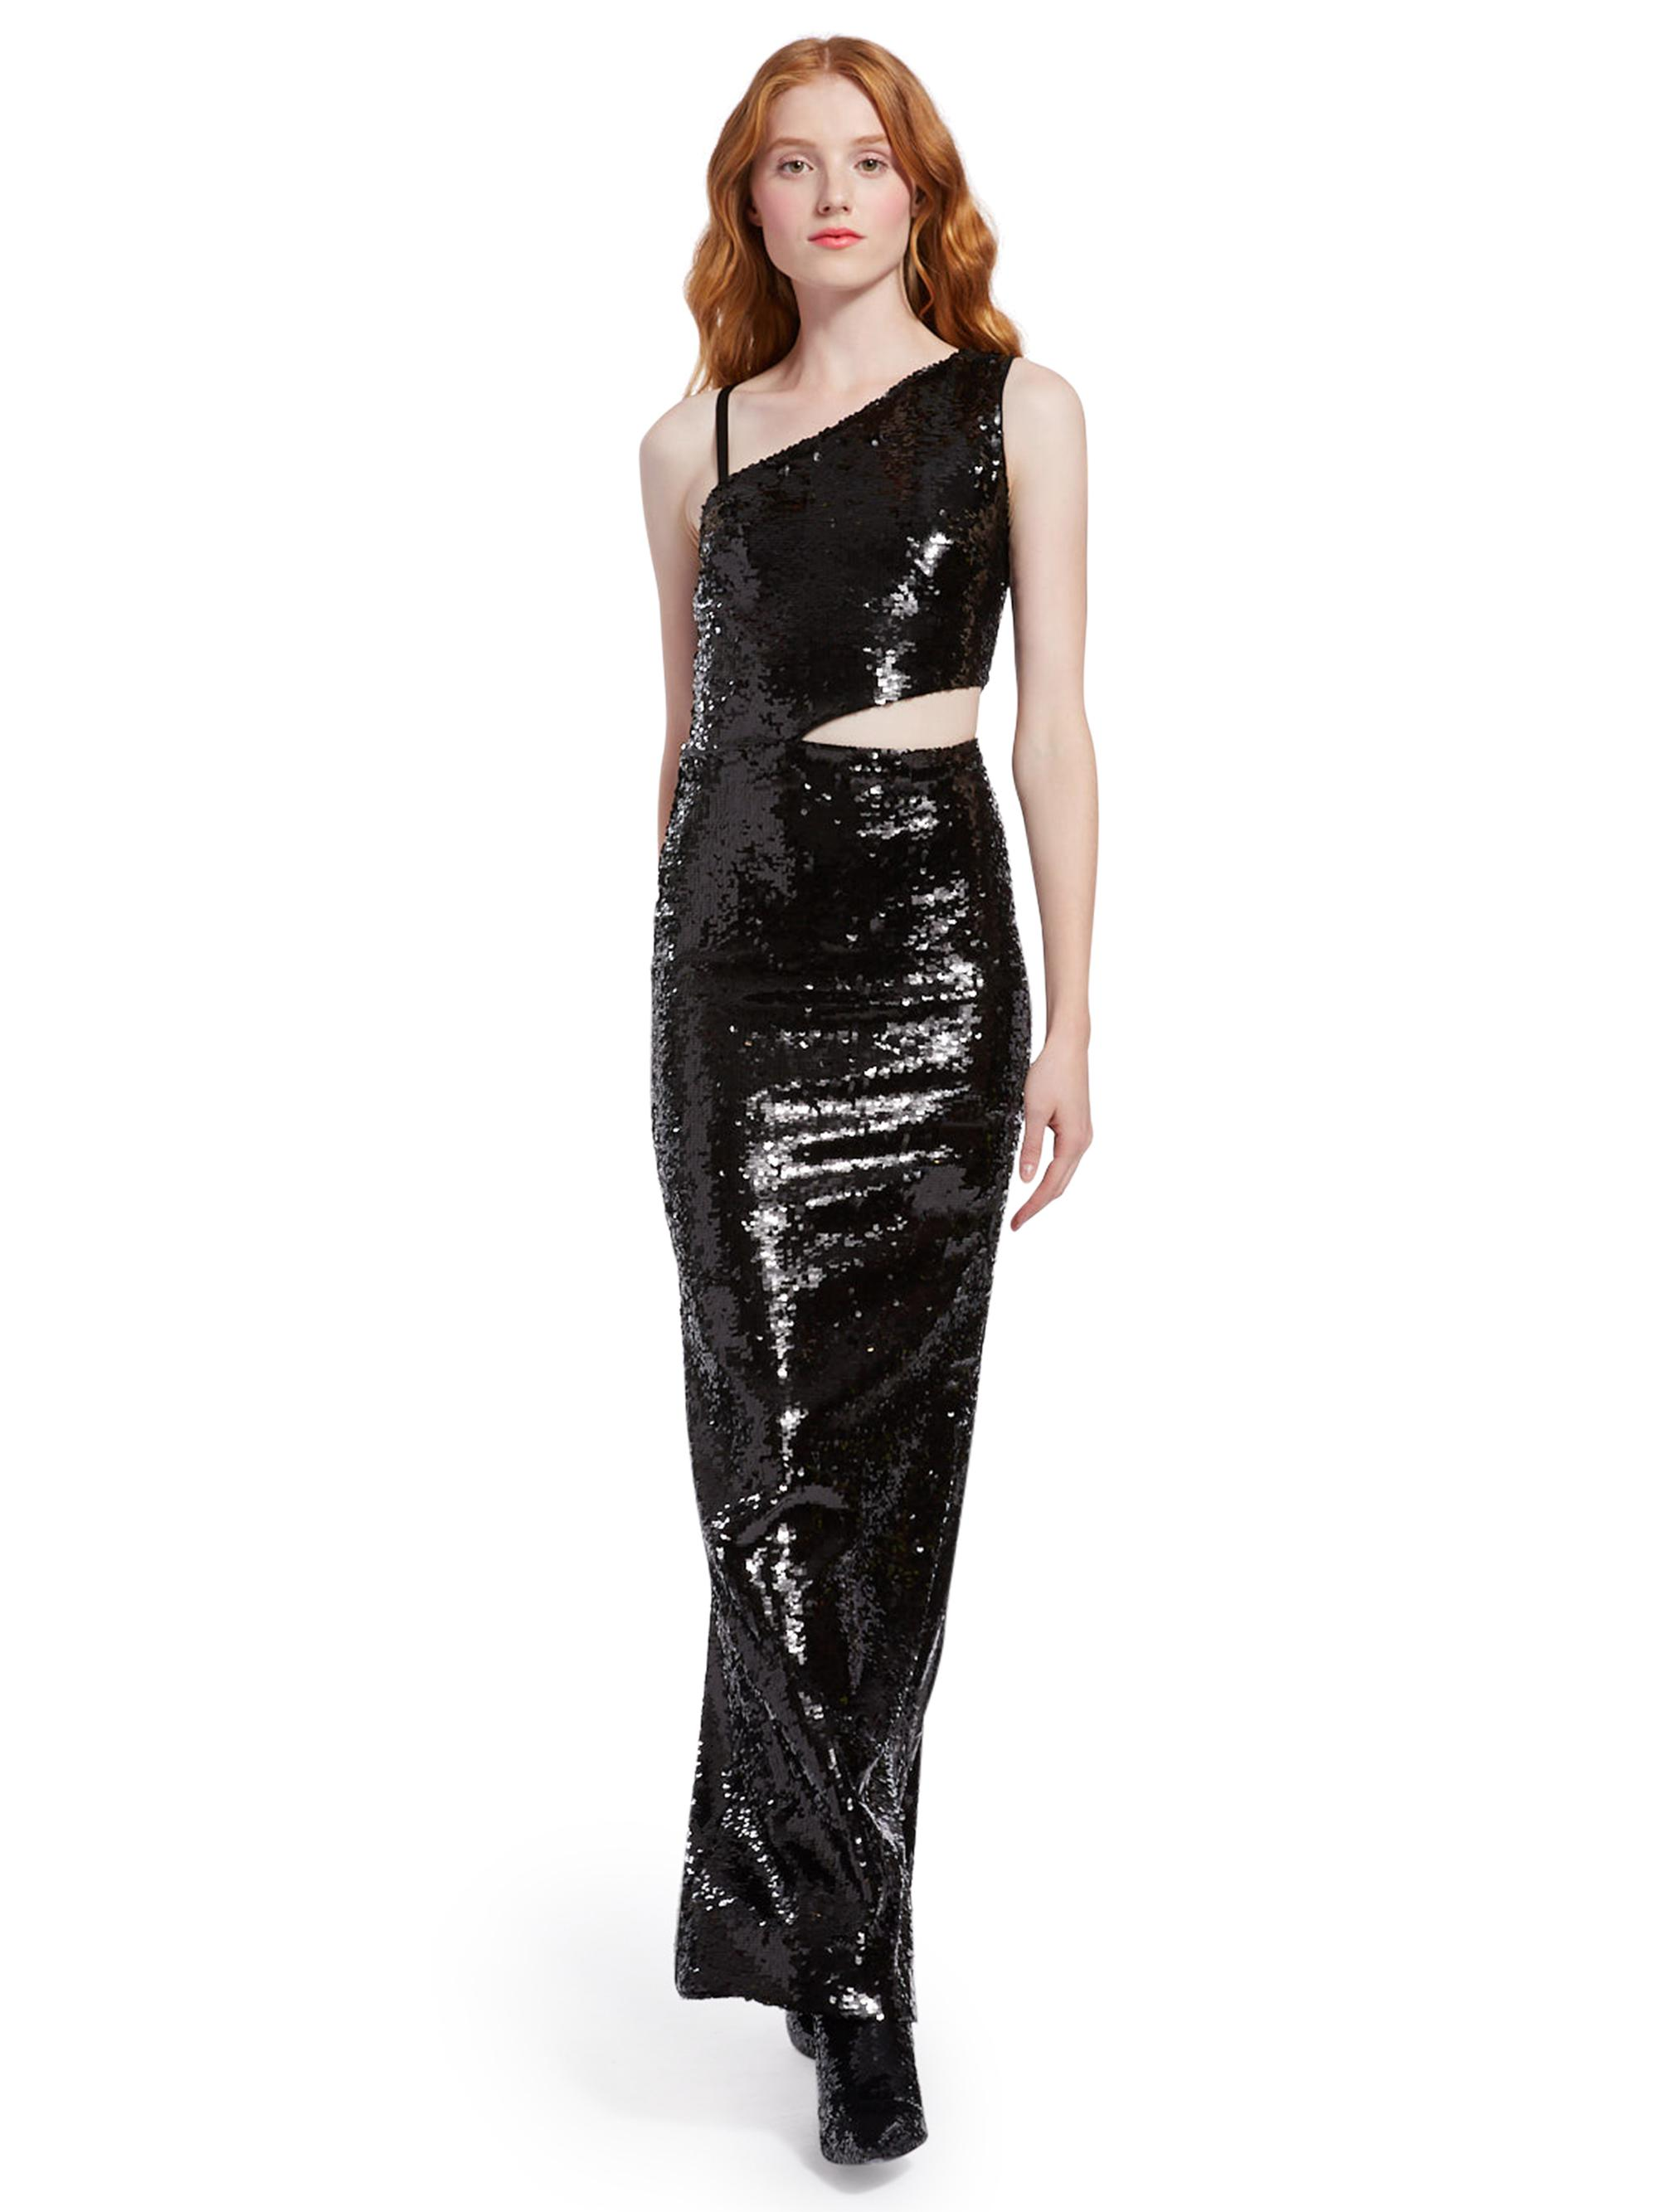 161ac3c3a13c Alice + Olivia Kaitlyn Sequin Cut Out Gown in Black - Lyst